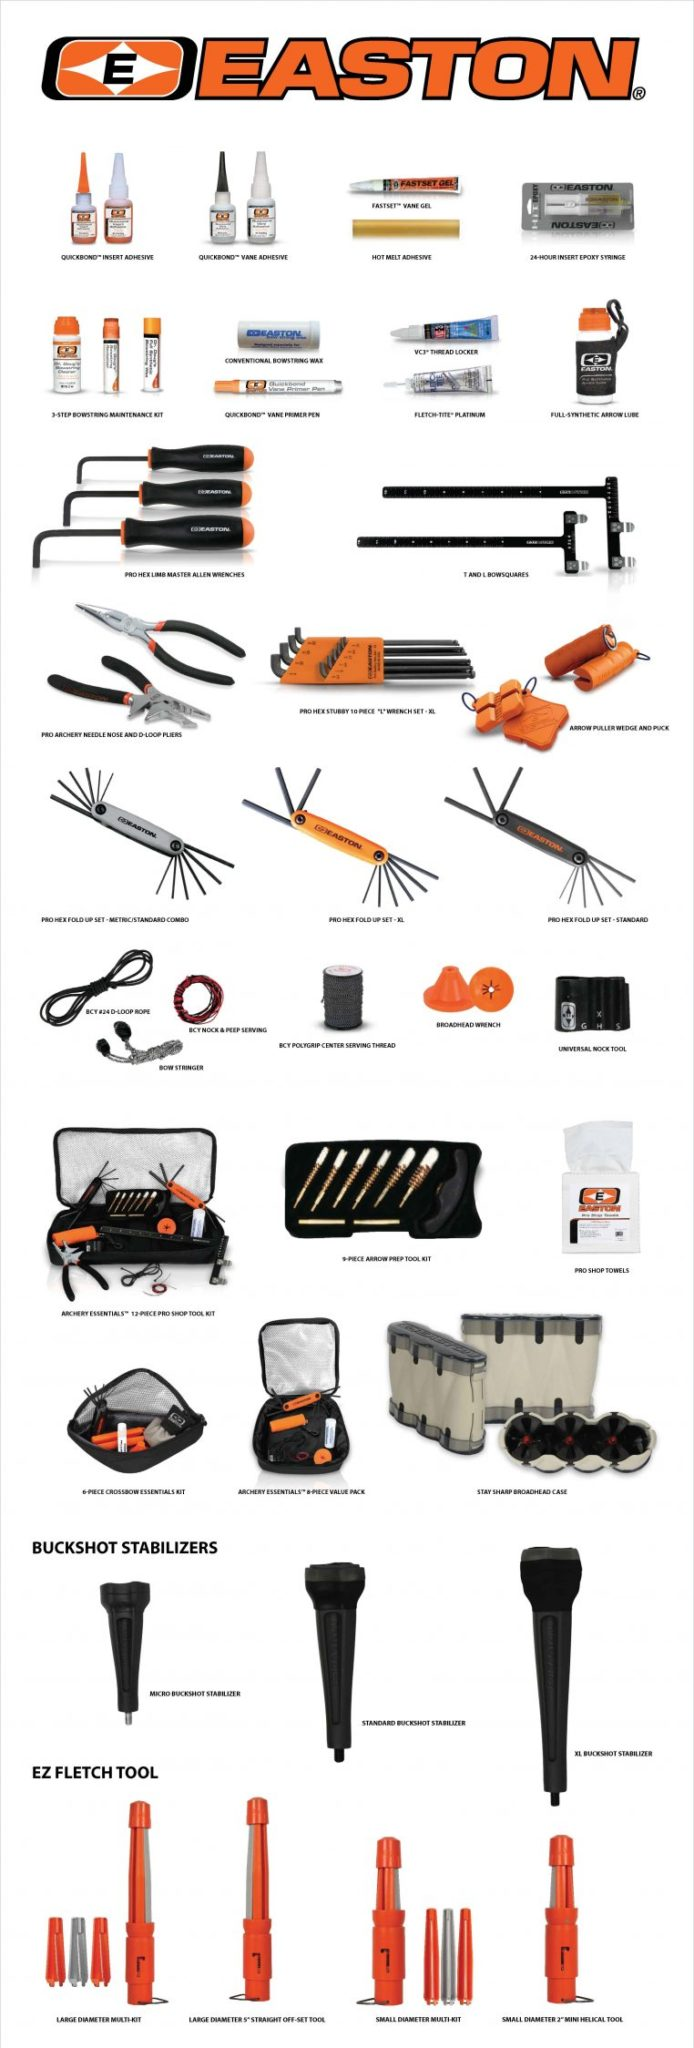 Easton Tools & Accessories